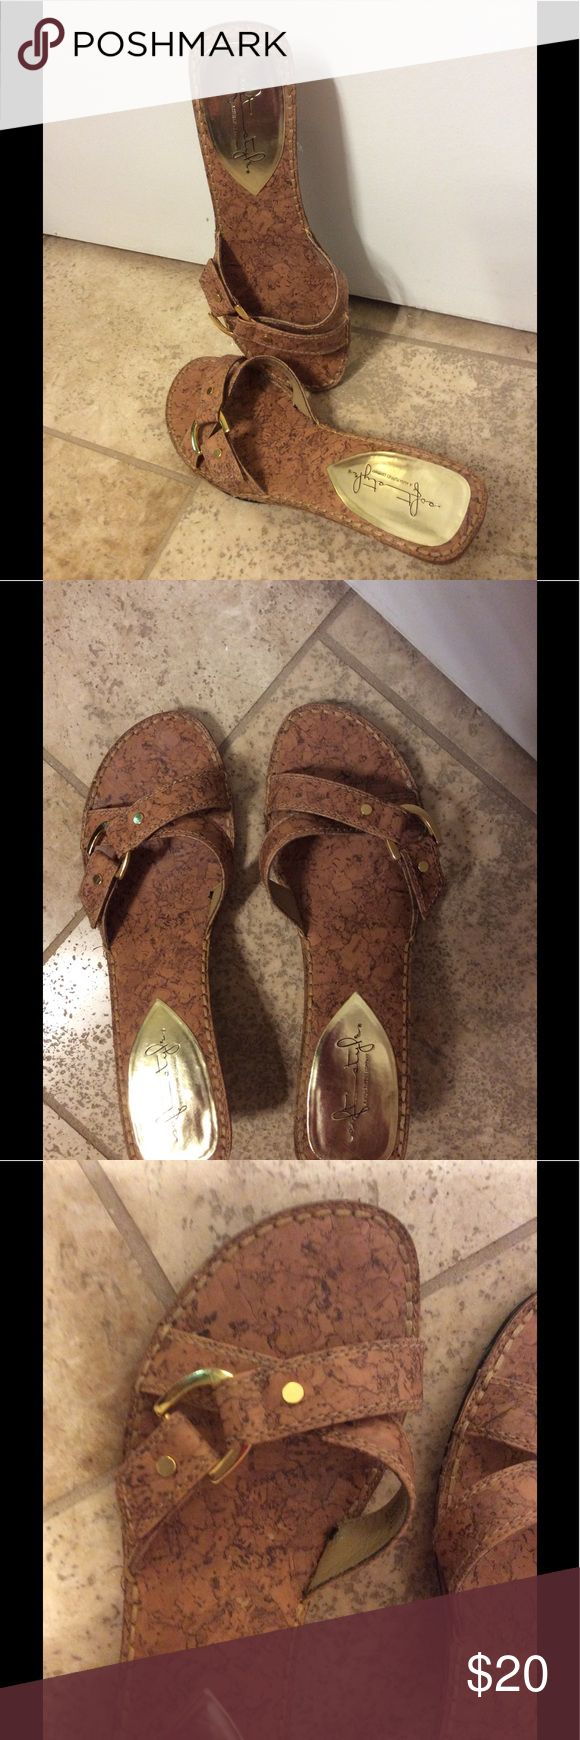 Hush Puppies Soft Style Sandal Beautiful simulated cork look Hush Puppies Soft Style, comfortable, easy to wear. Slide on/off.. Buckle decoration cross straps. Footbed great condition with wearing on the heels. Good condition. I also have the brown leather version. Smoke/pet free environment. Hush Puppies Shoes Sandals